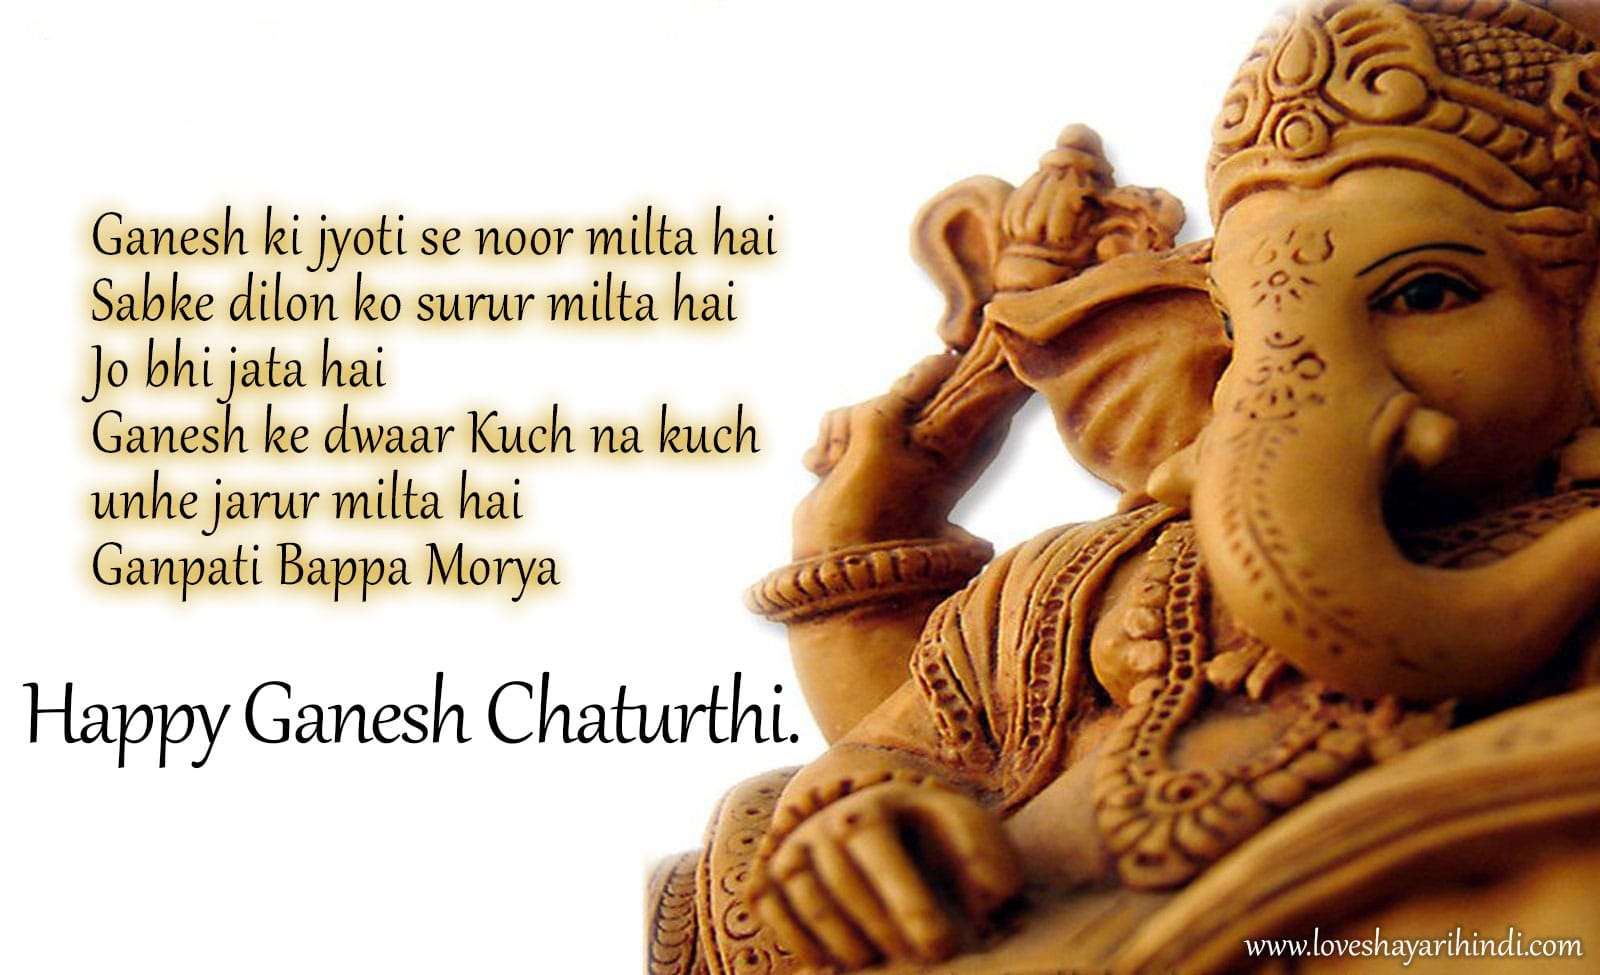 Ganesh Chaturthi Wishes Collection